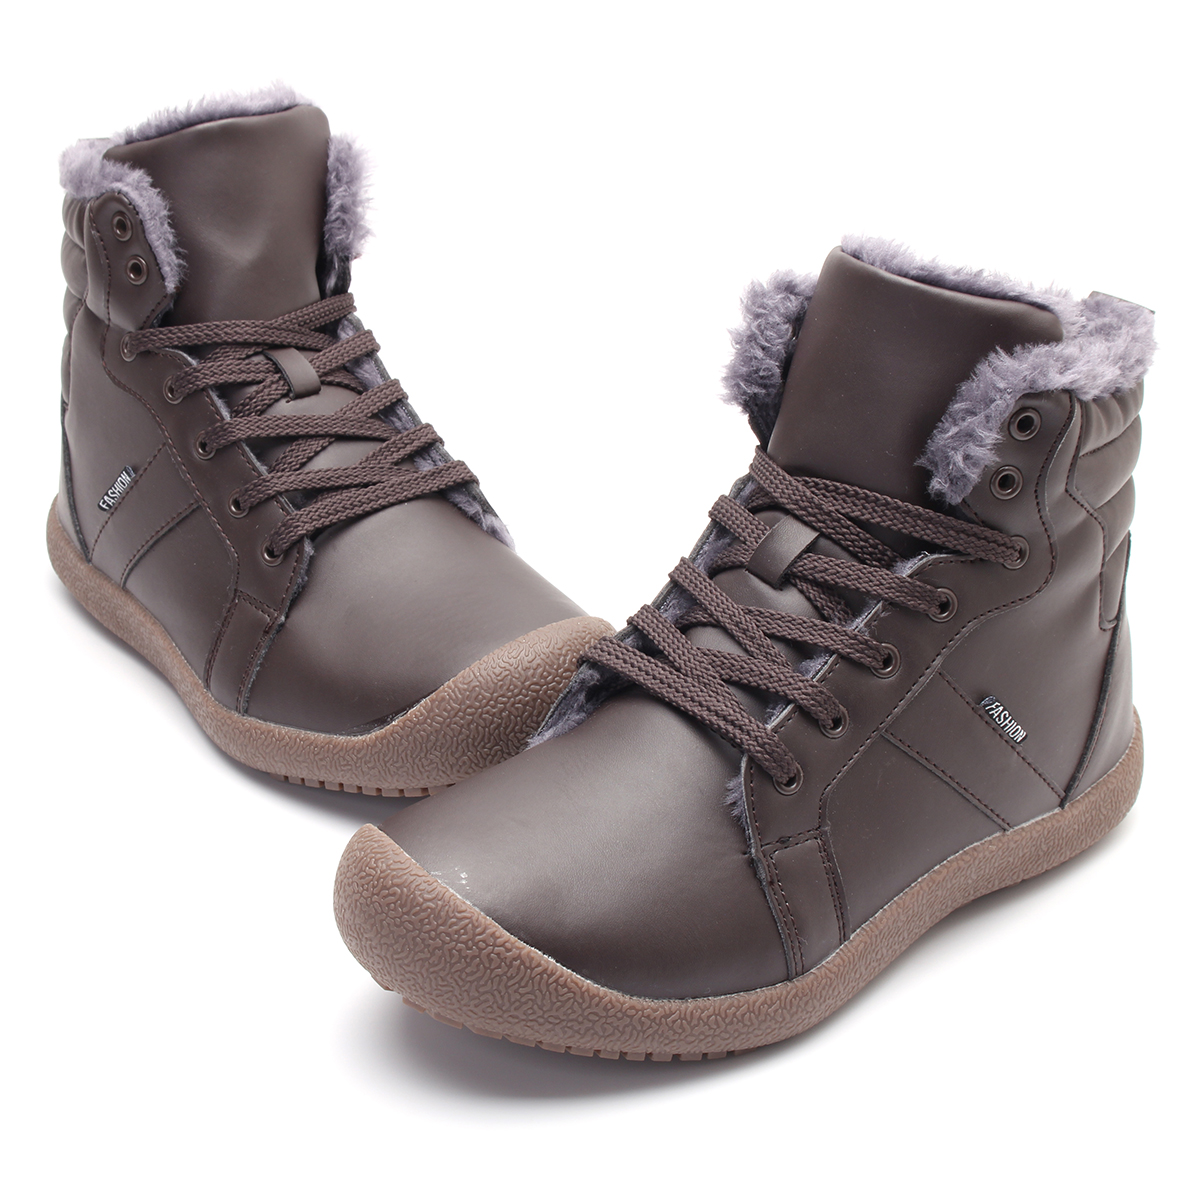 Men-039-s-Winter-Warm-Snow-Boot-Waterproof-PU-High-Top-Lace-Up-Comfy-Sneaker-Shoes